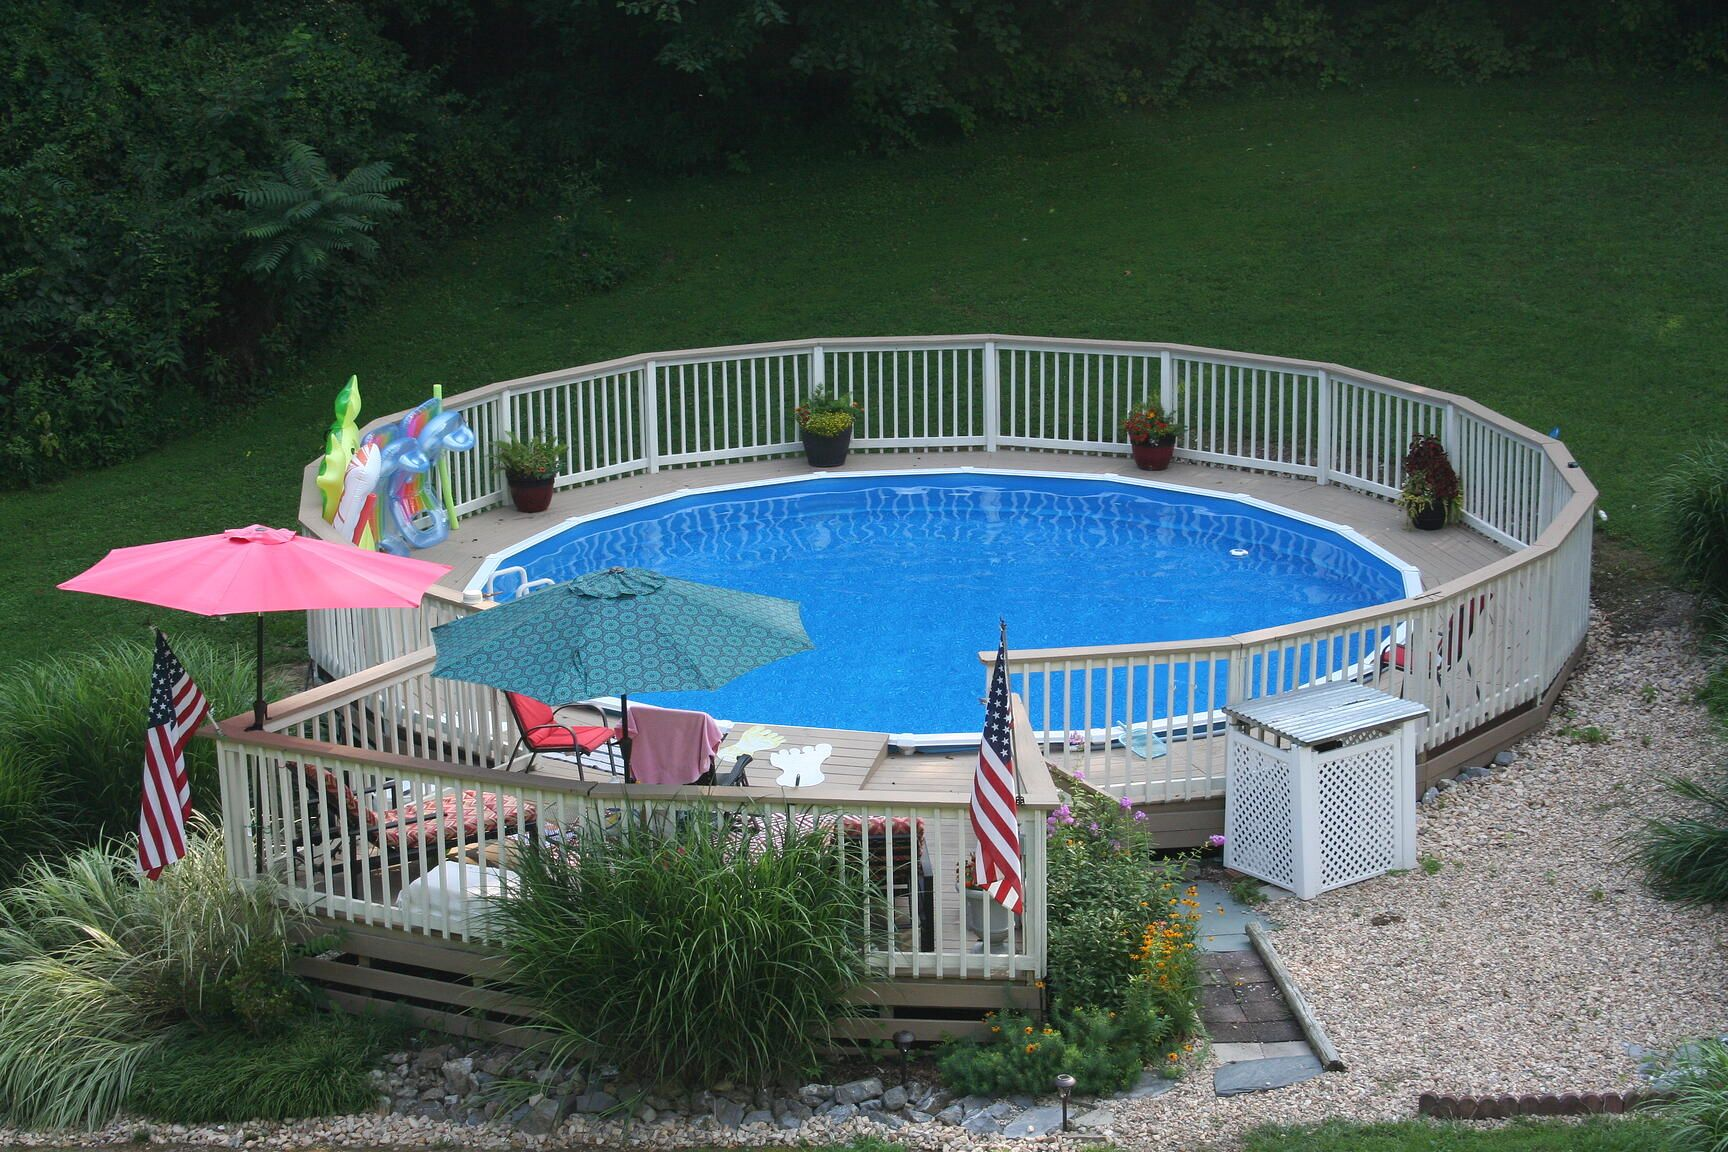 Park Art|My WordPress Blog_How To Open An Above Ground Pool In The Spring